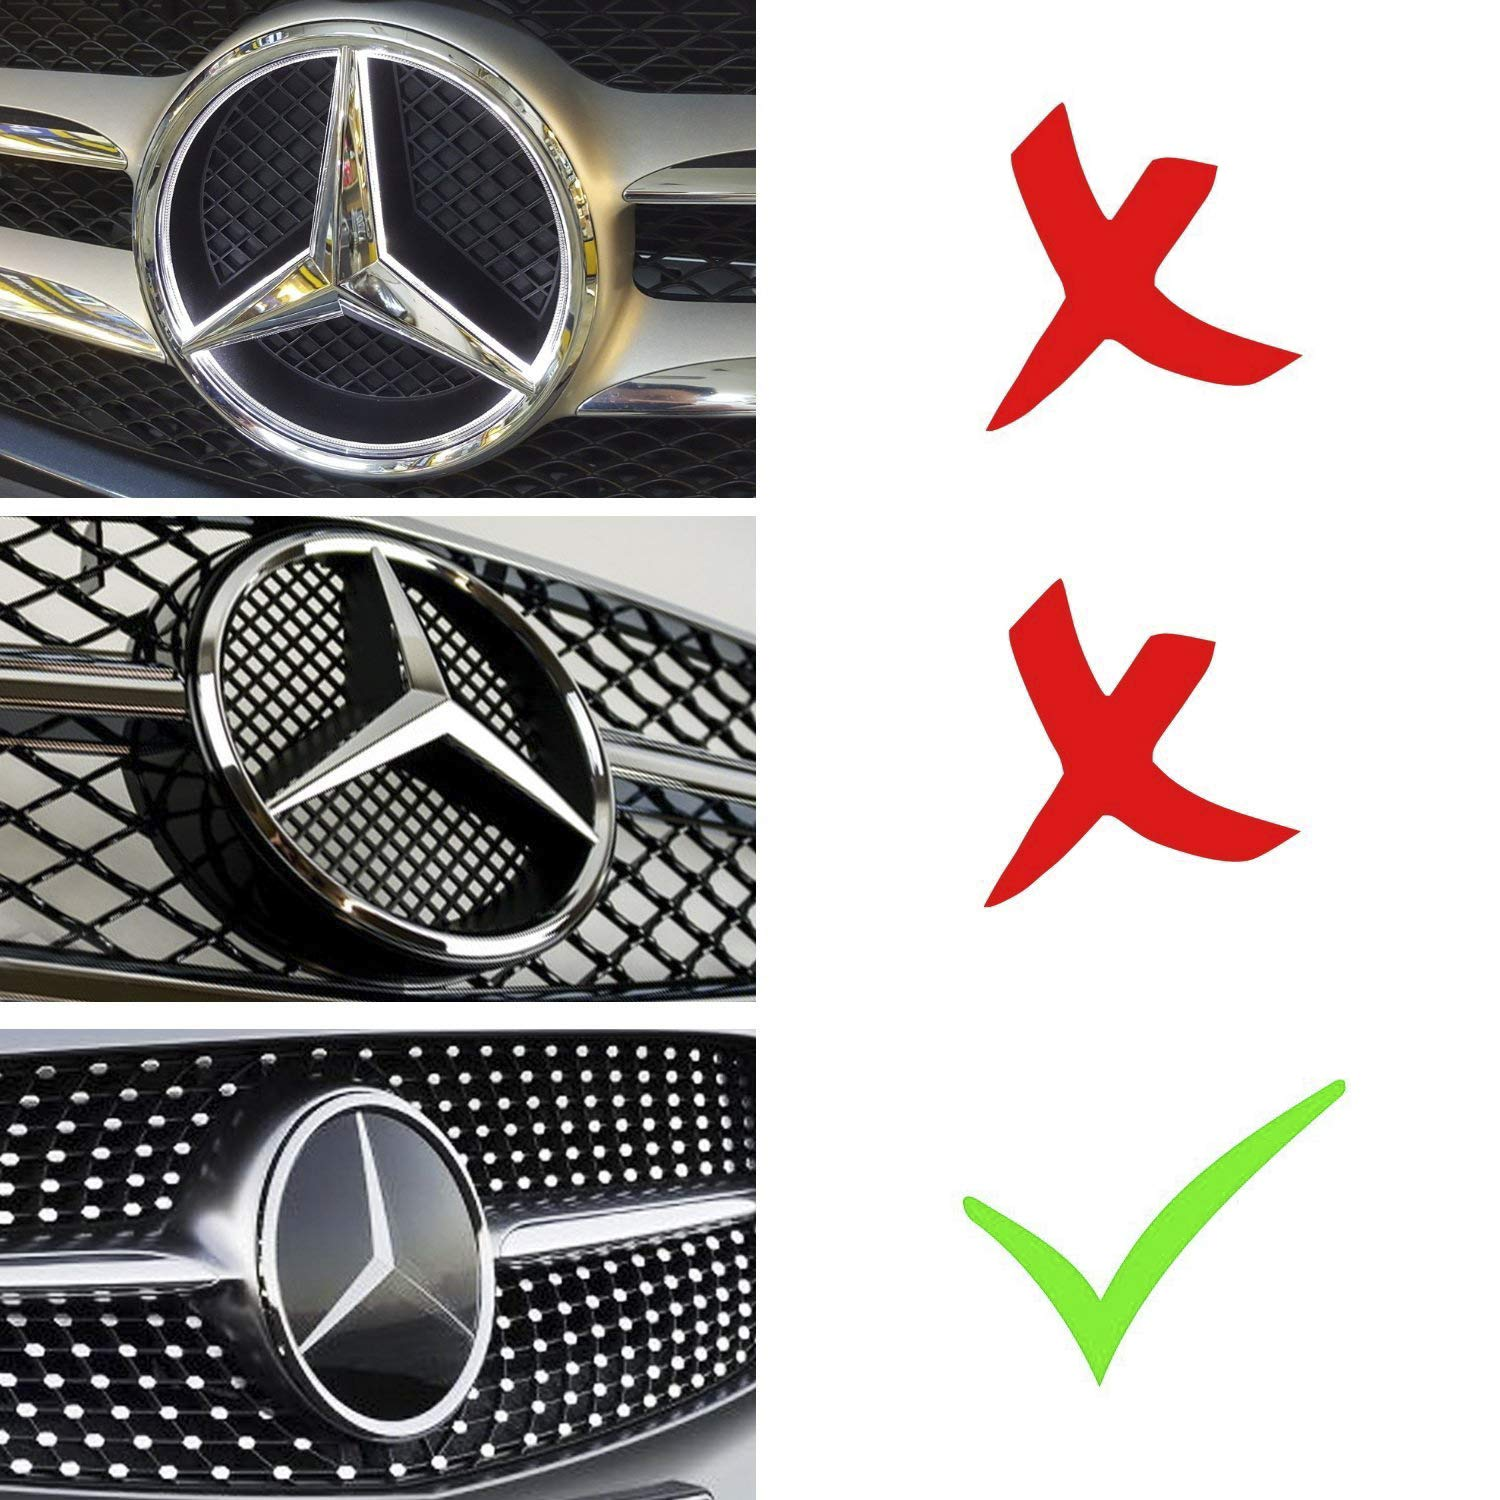 IHEX Auto Xenon White Illuminated LED Car Logo Grid Badge for Mercedes Benz A/B/C/CLS/E/GLK/GL/R Series Front Grille LED Emblem Light (Mirror Surface)